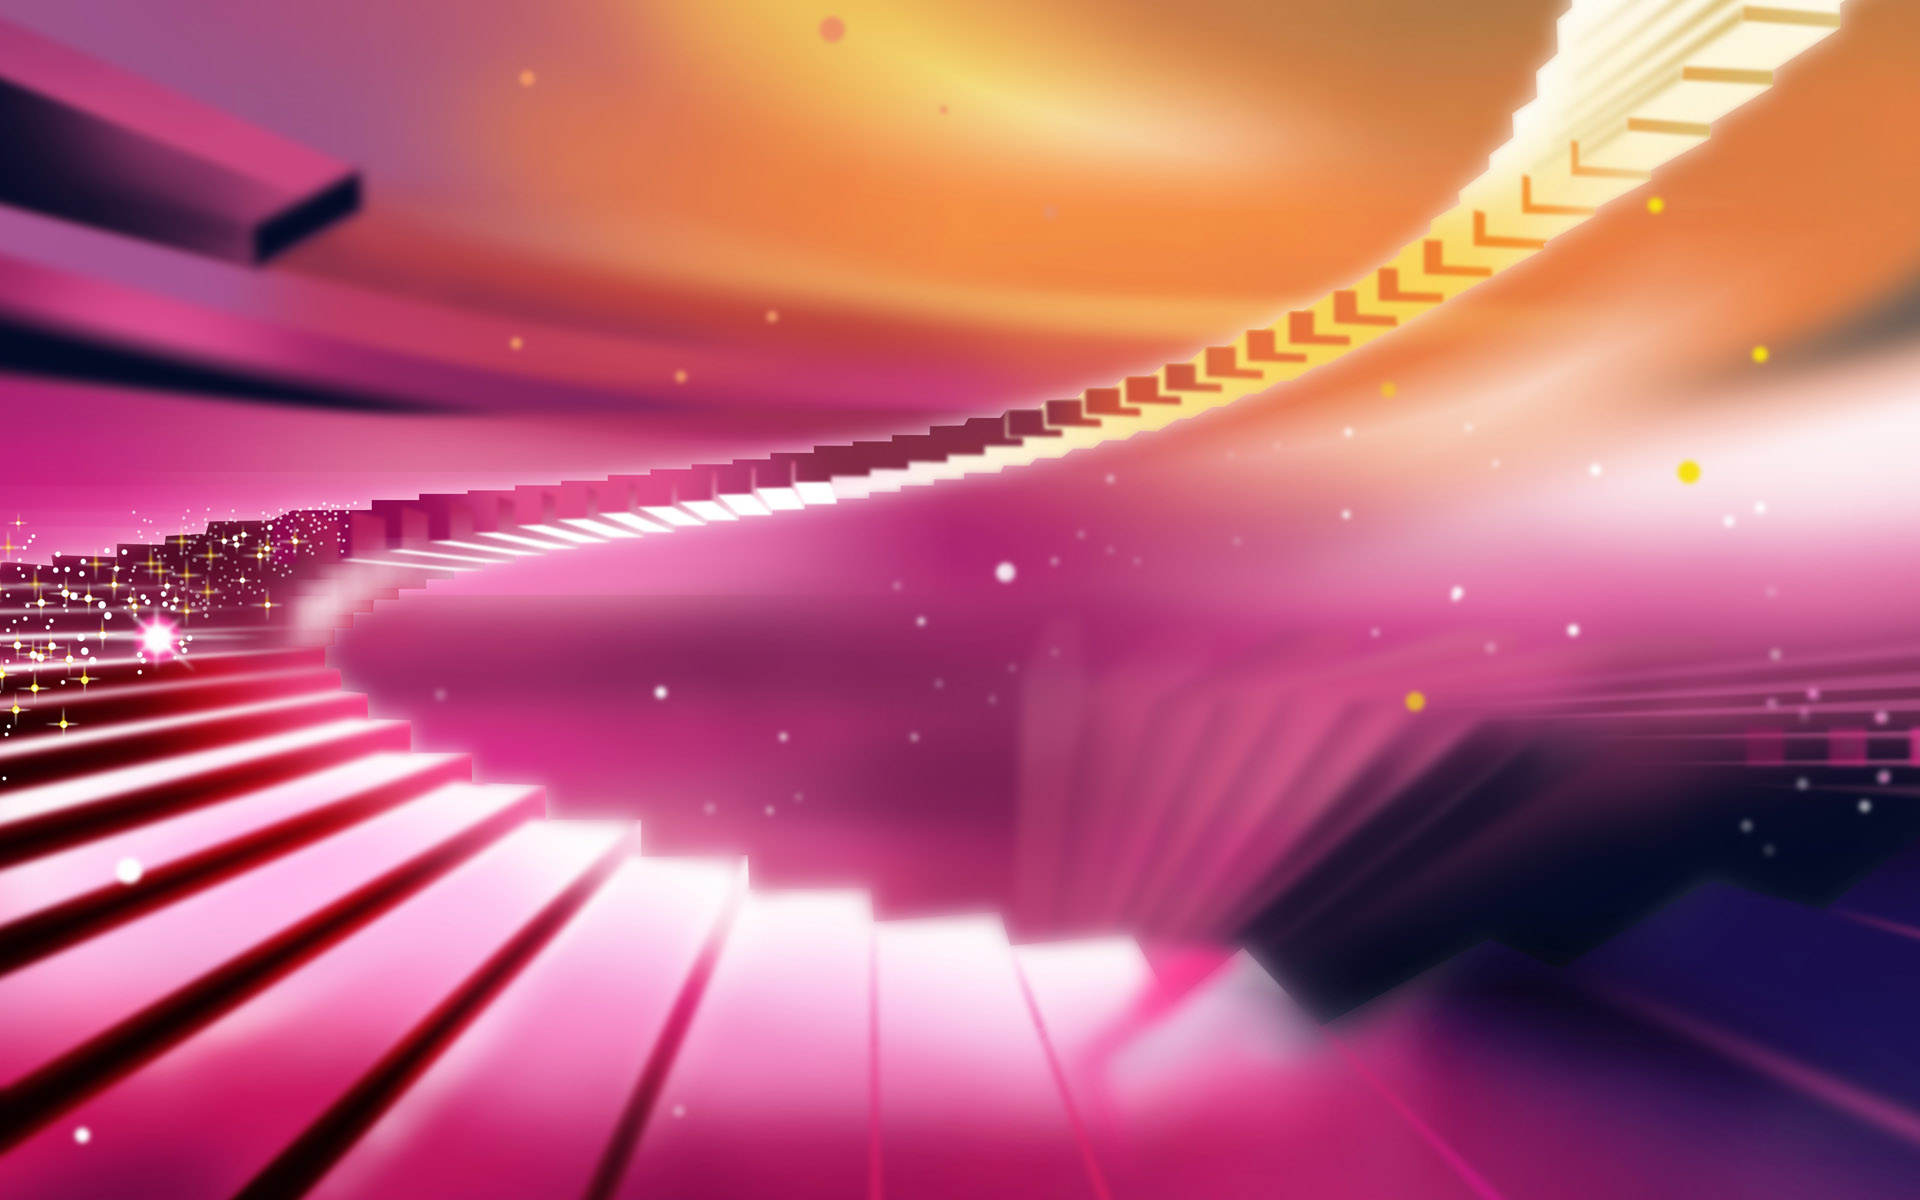 Colorful background of high-definition 20898